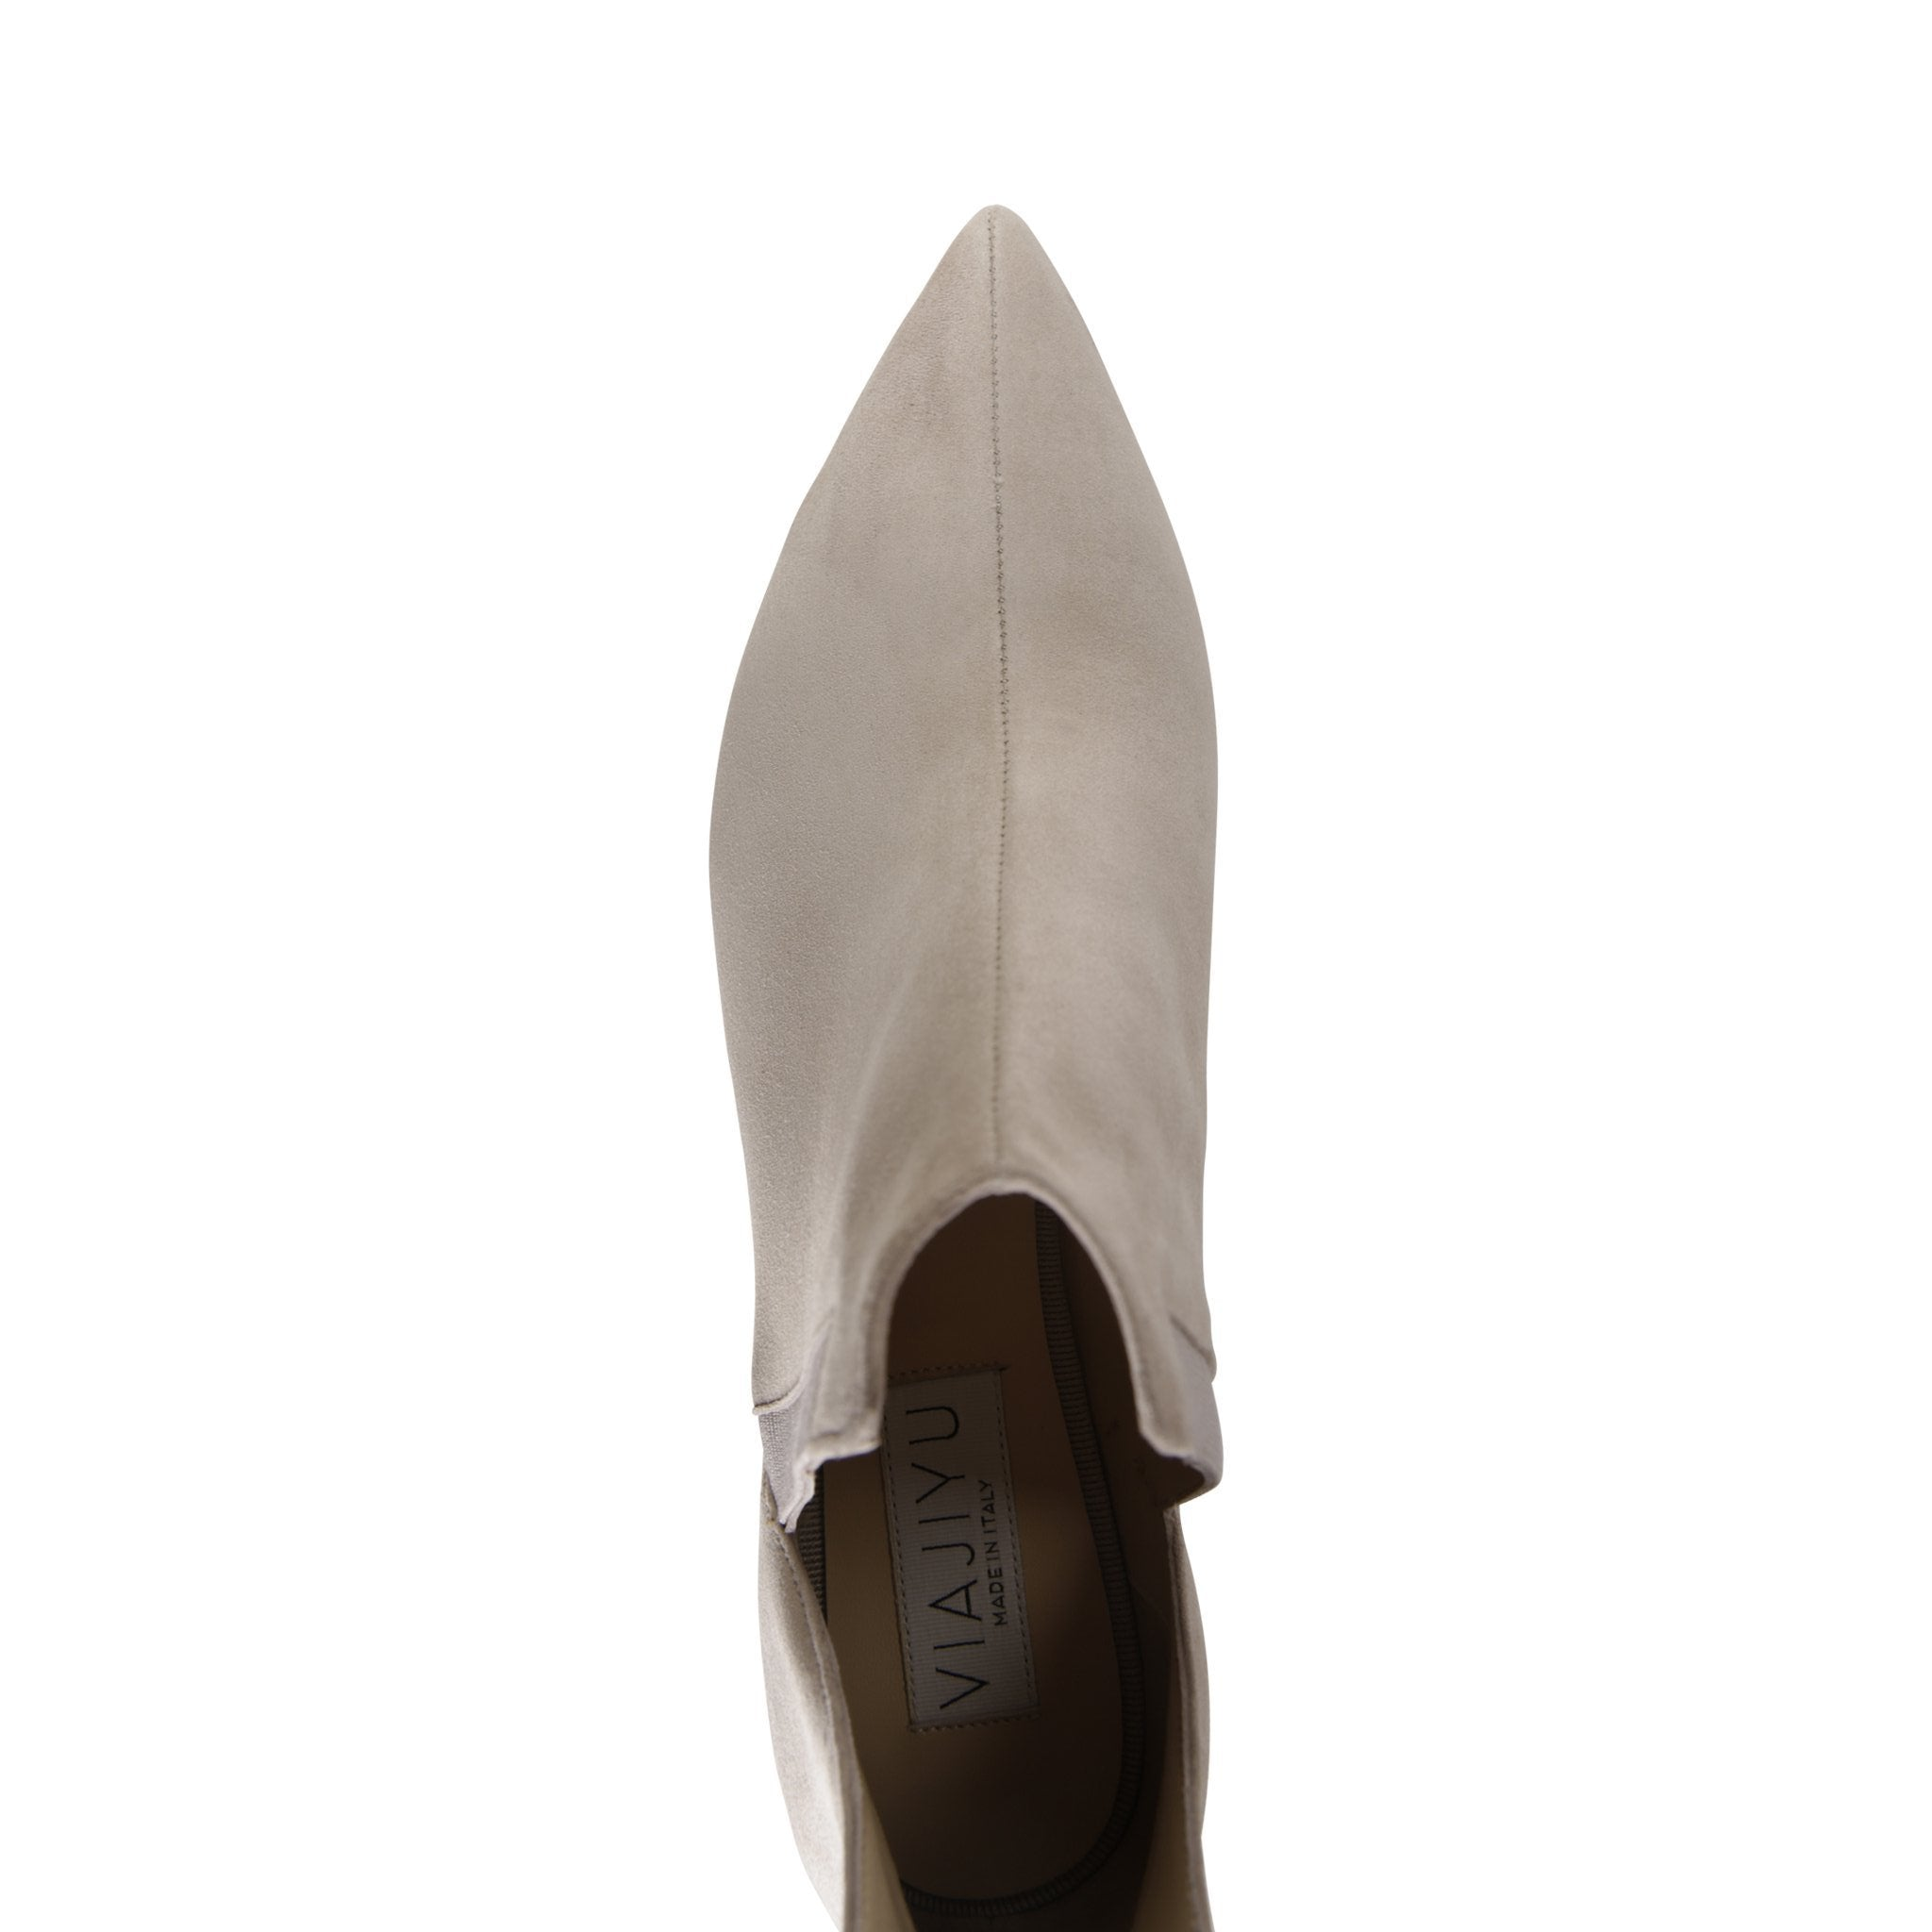 SYRENE - Velukid Tan + Grosgrain Cenere, VIAJIYU - Women's Hand Made Sustainable Luxury Shoes. Made in Italy. Made to Order.